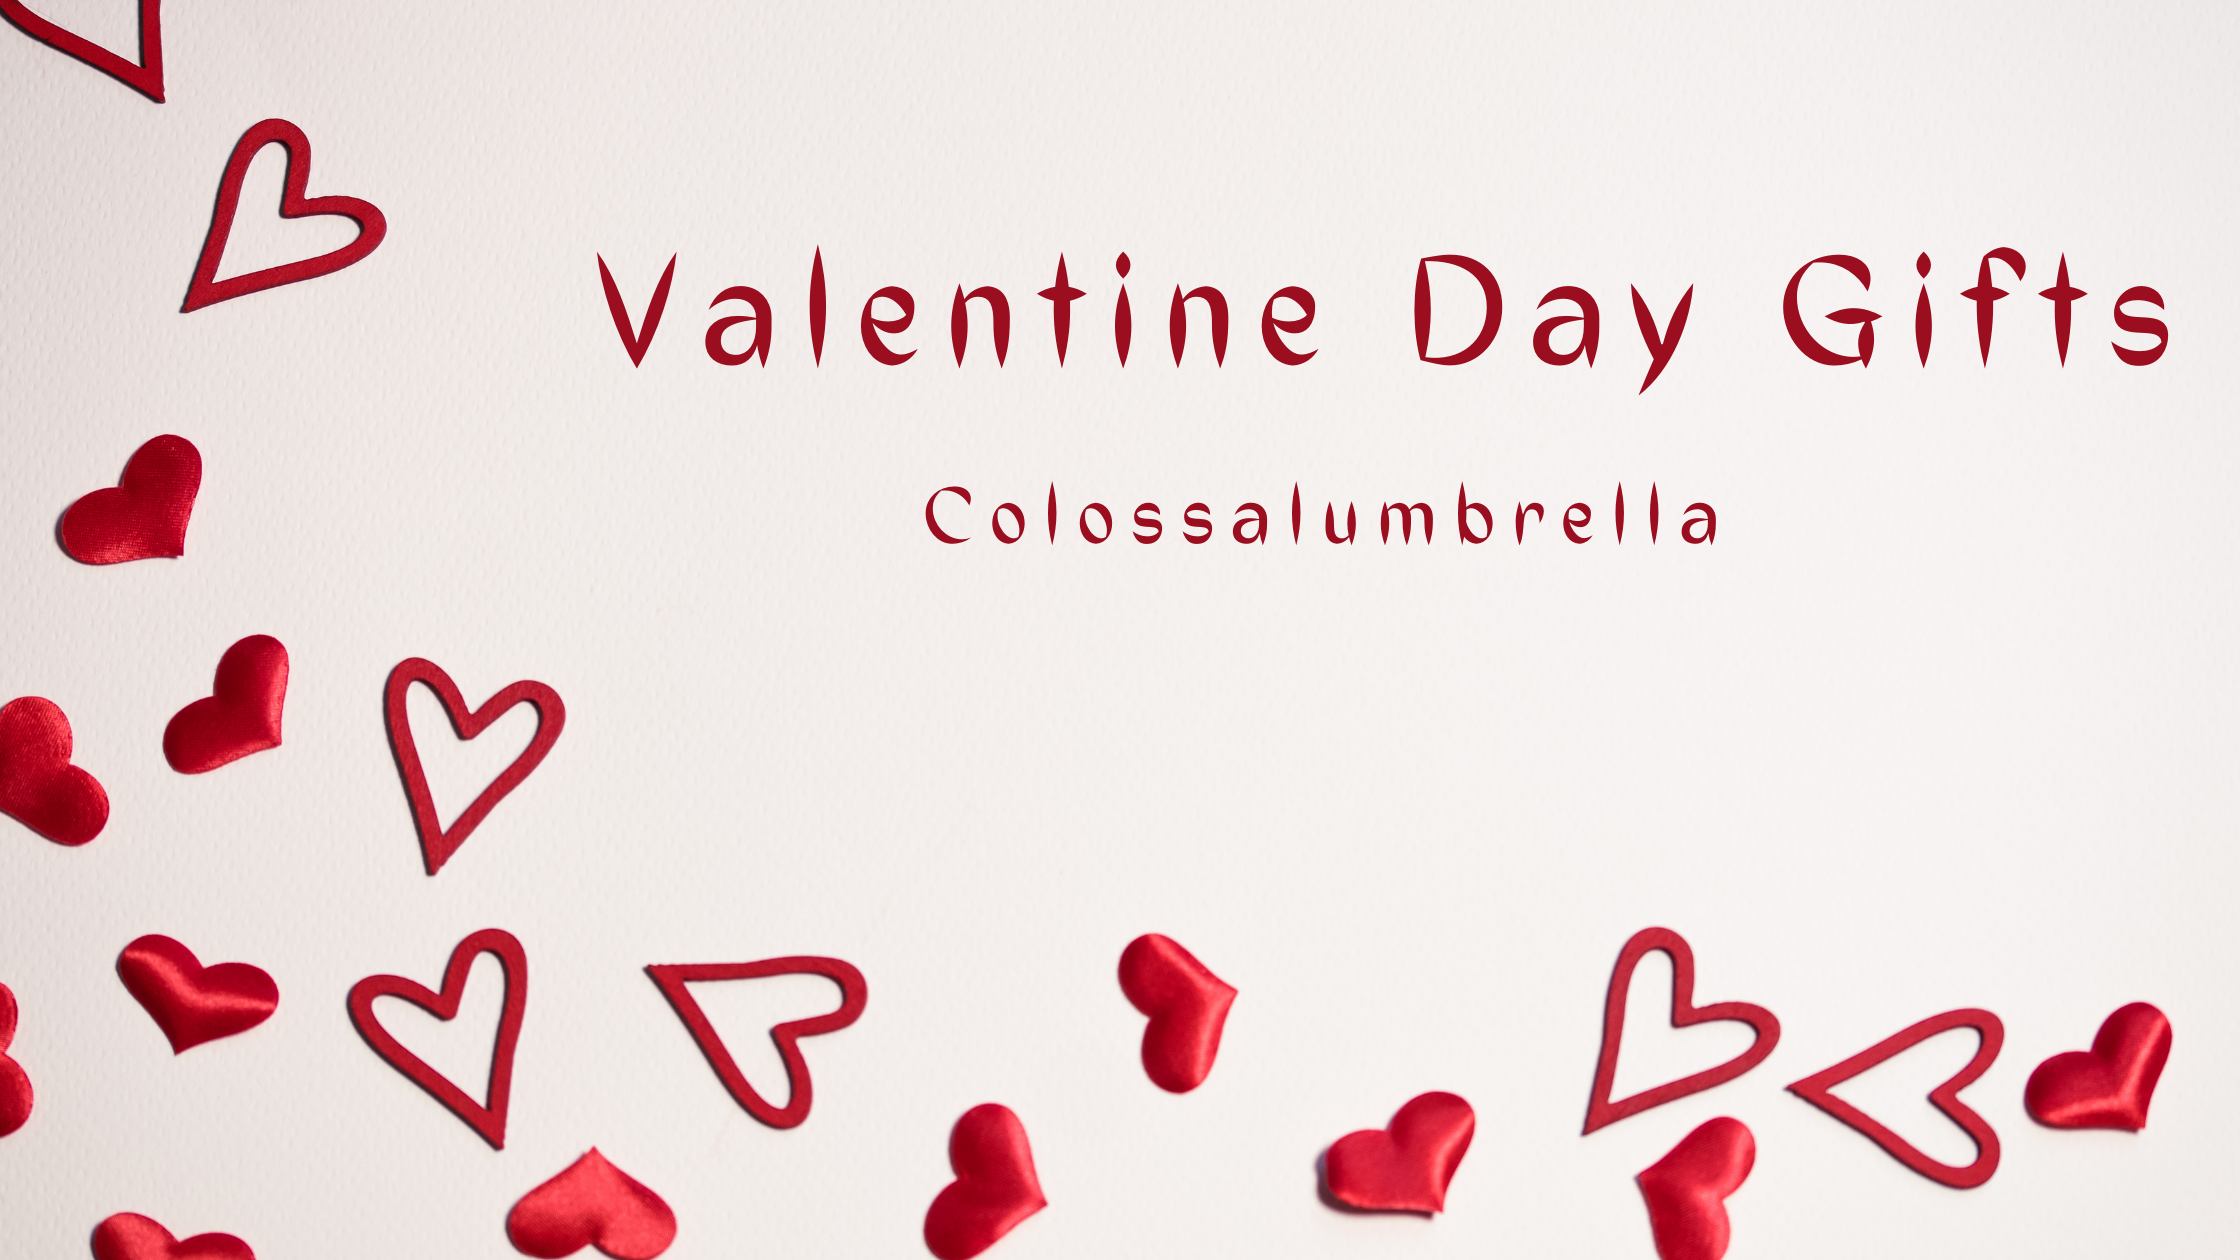 Valentine day gift ideas – Gift ideas for him/her